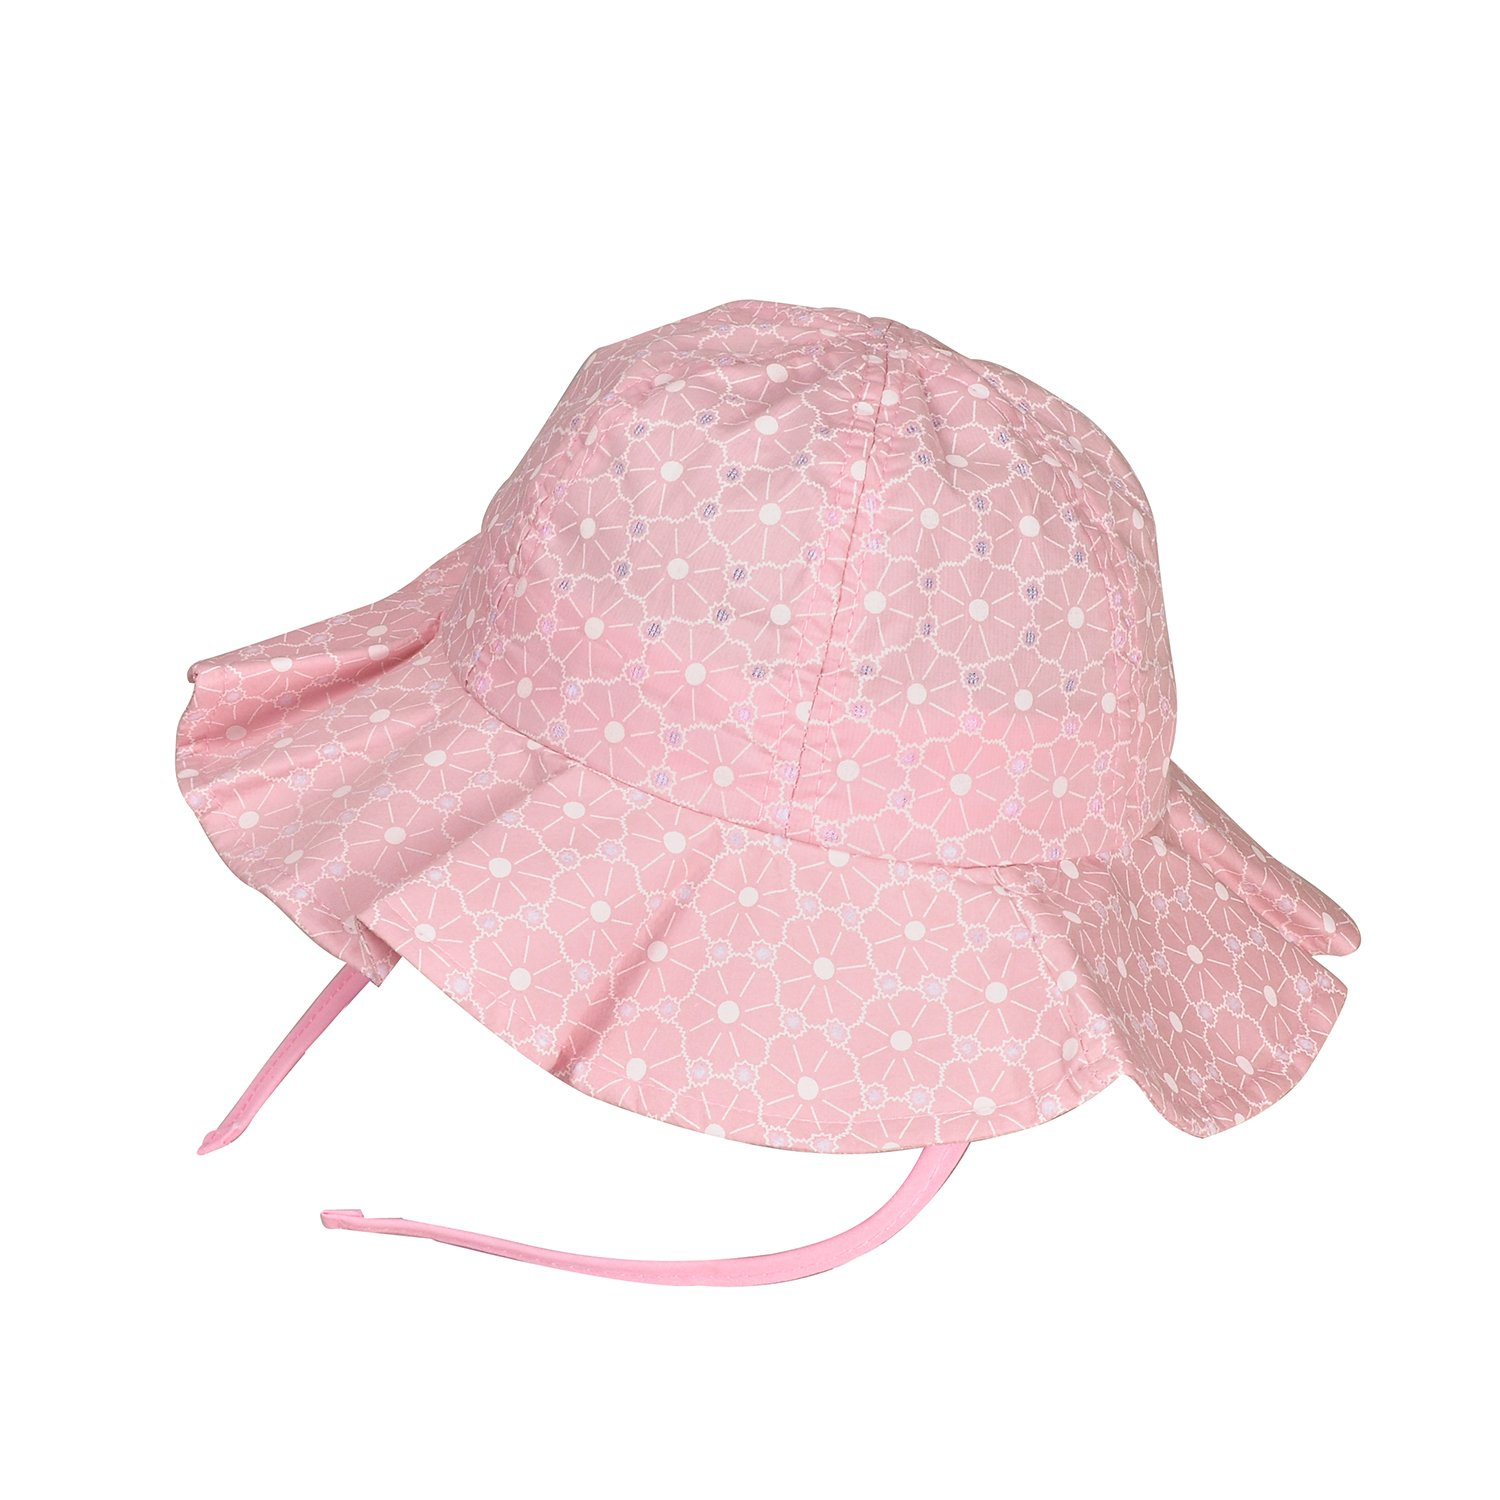 RORKEE Infant Toddlers Baby Girls Wide Brim Sun Protection Summer Floppy Hat(Pack of 2) by RORKEE (Image #2)